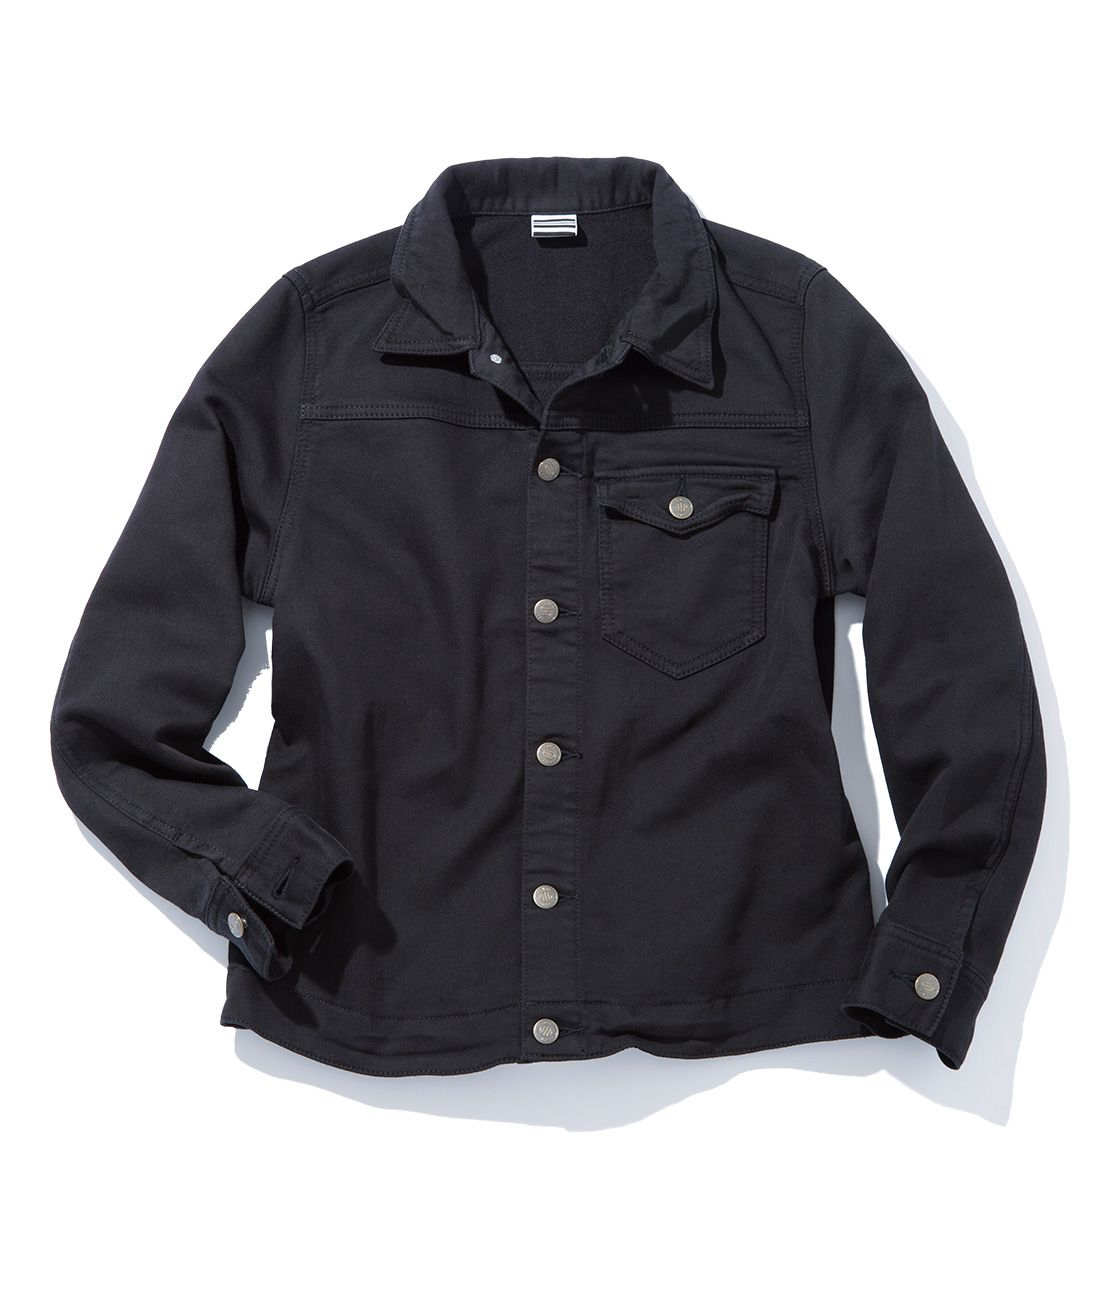 Taordenim shirt jacket